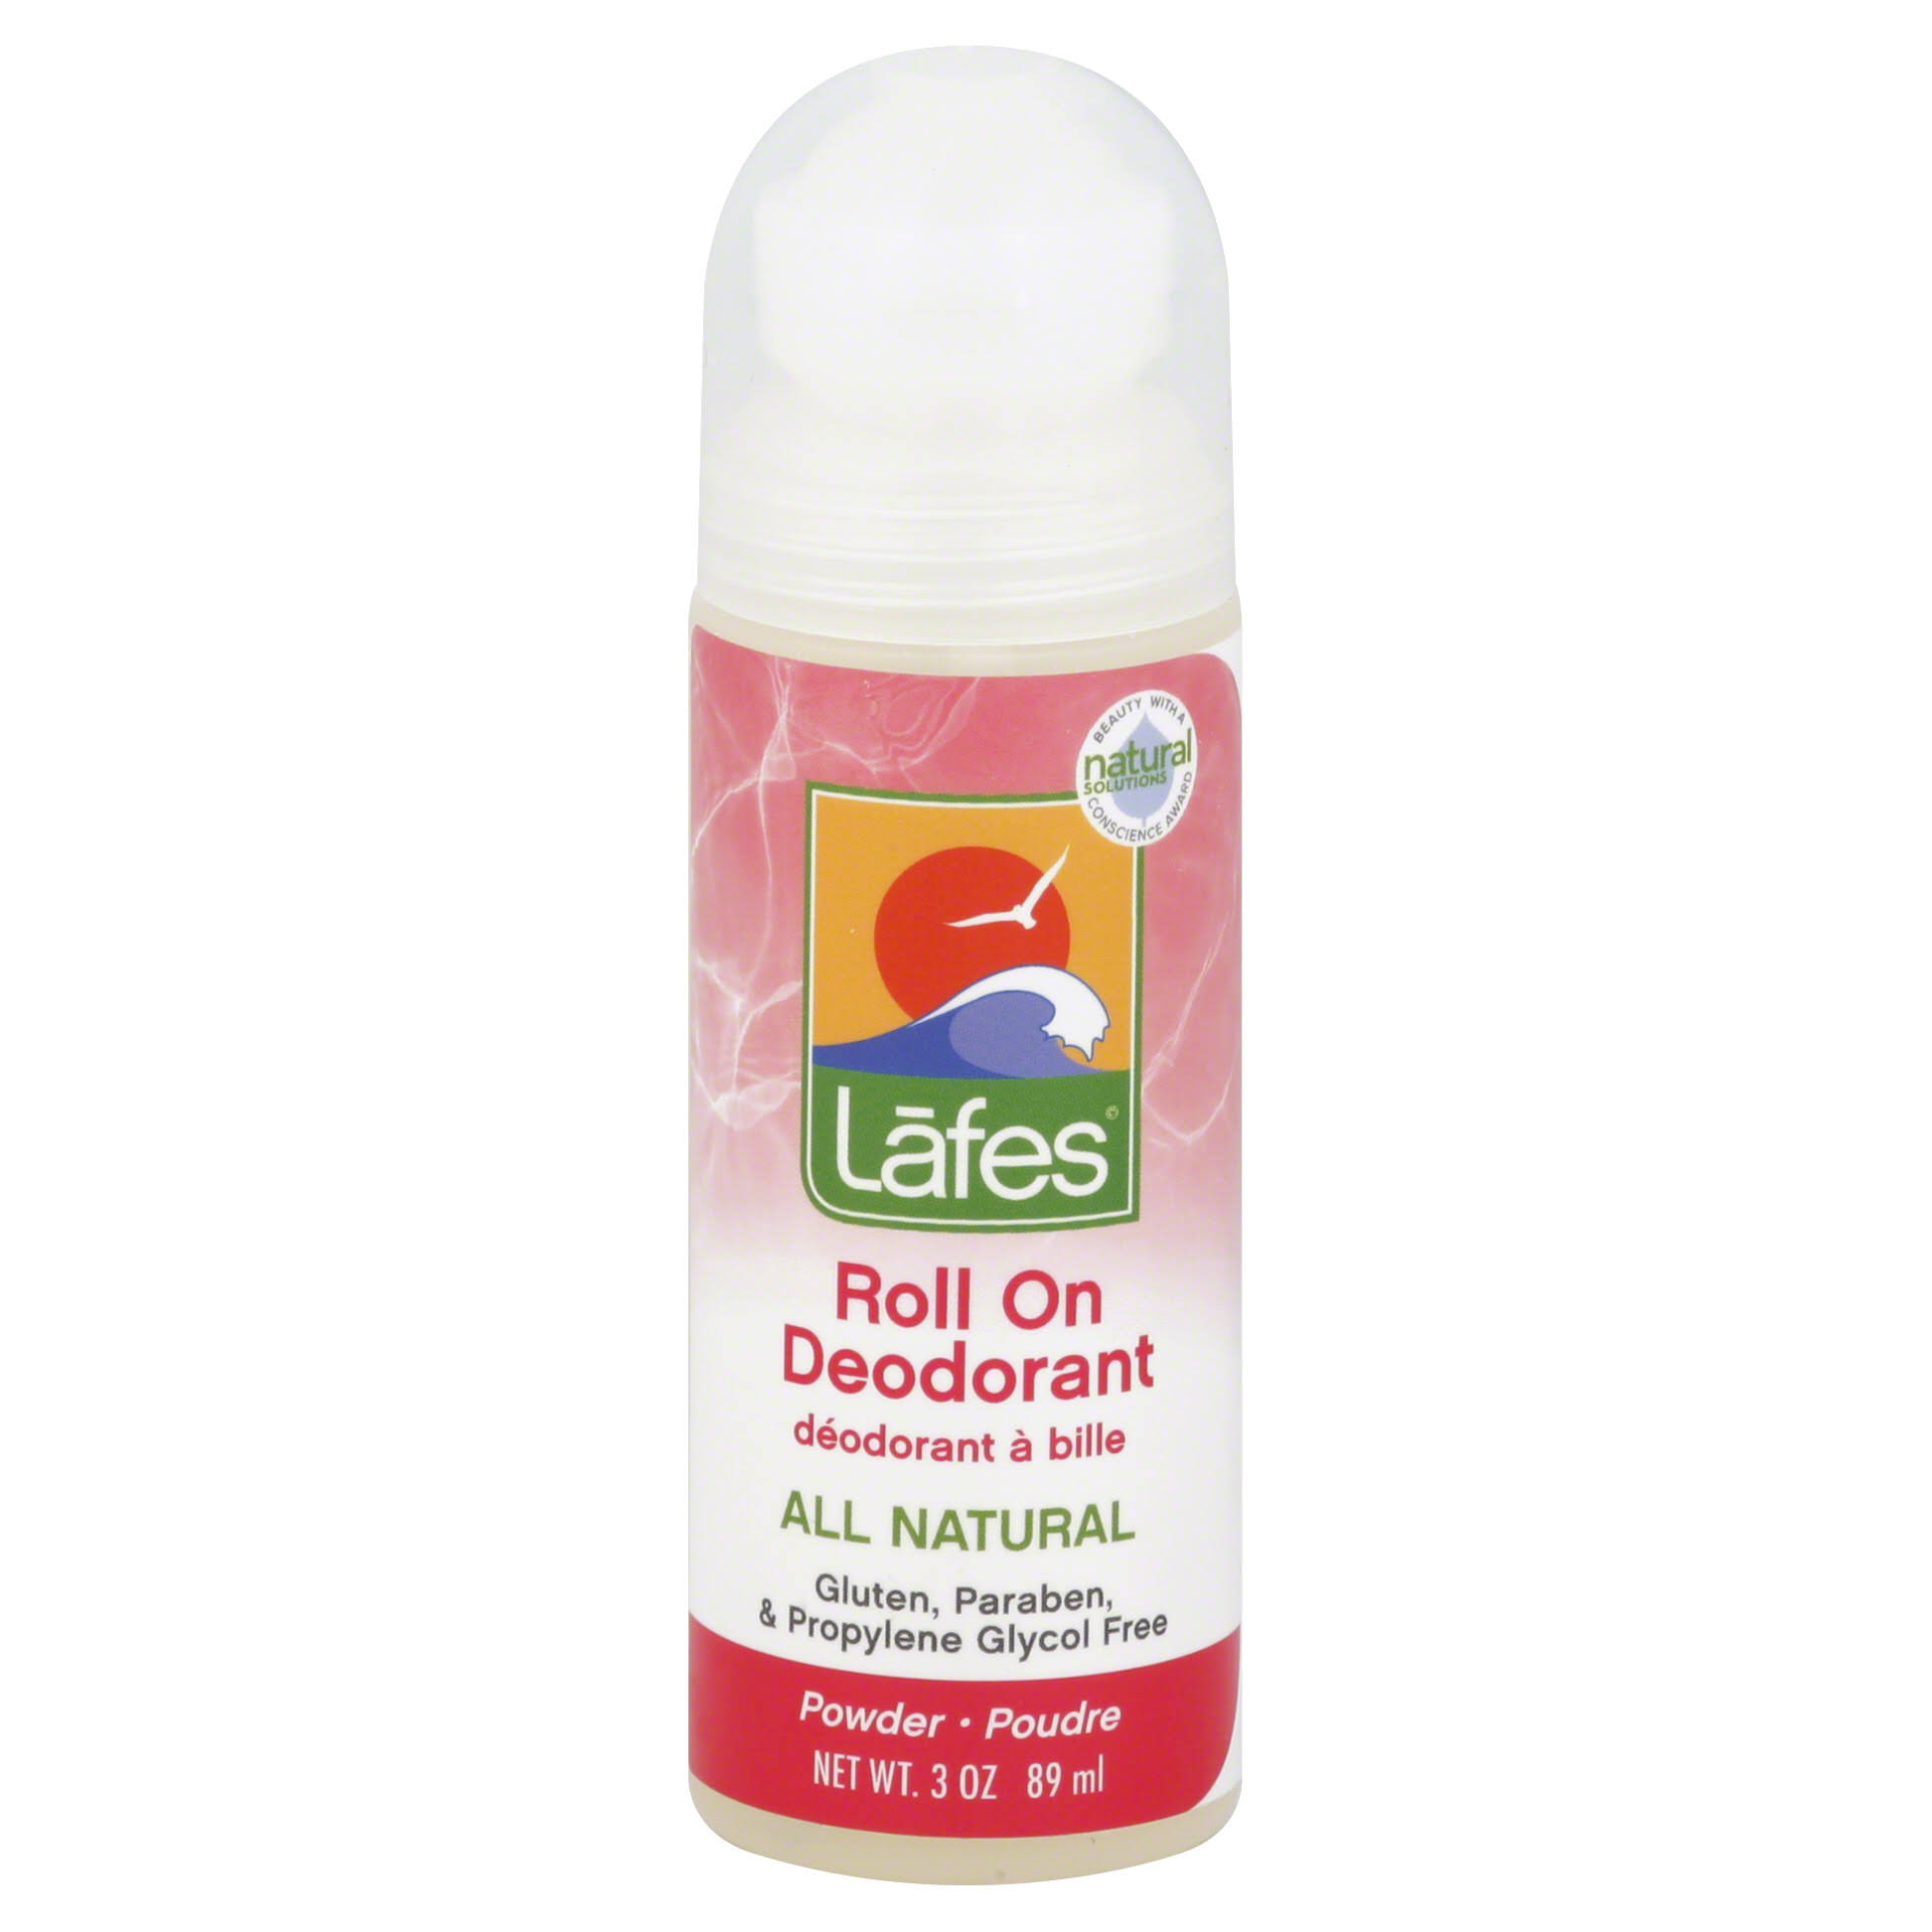 Lafe's Natural and Organic Roll On Deodorant Powder Scent